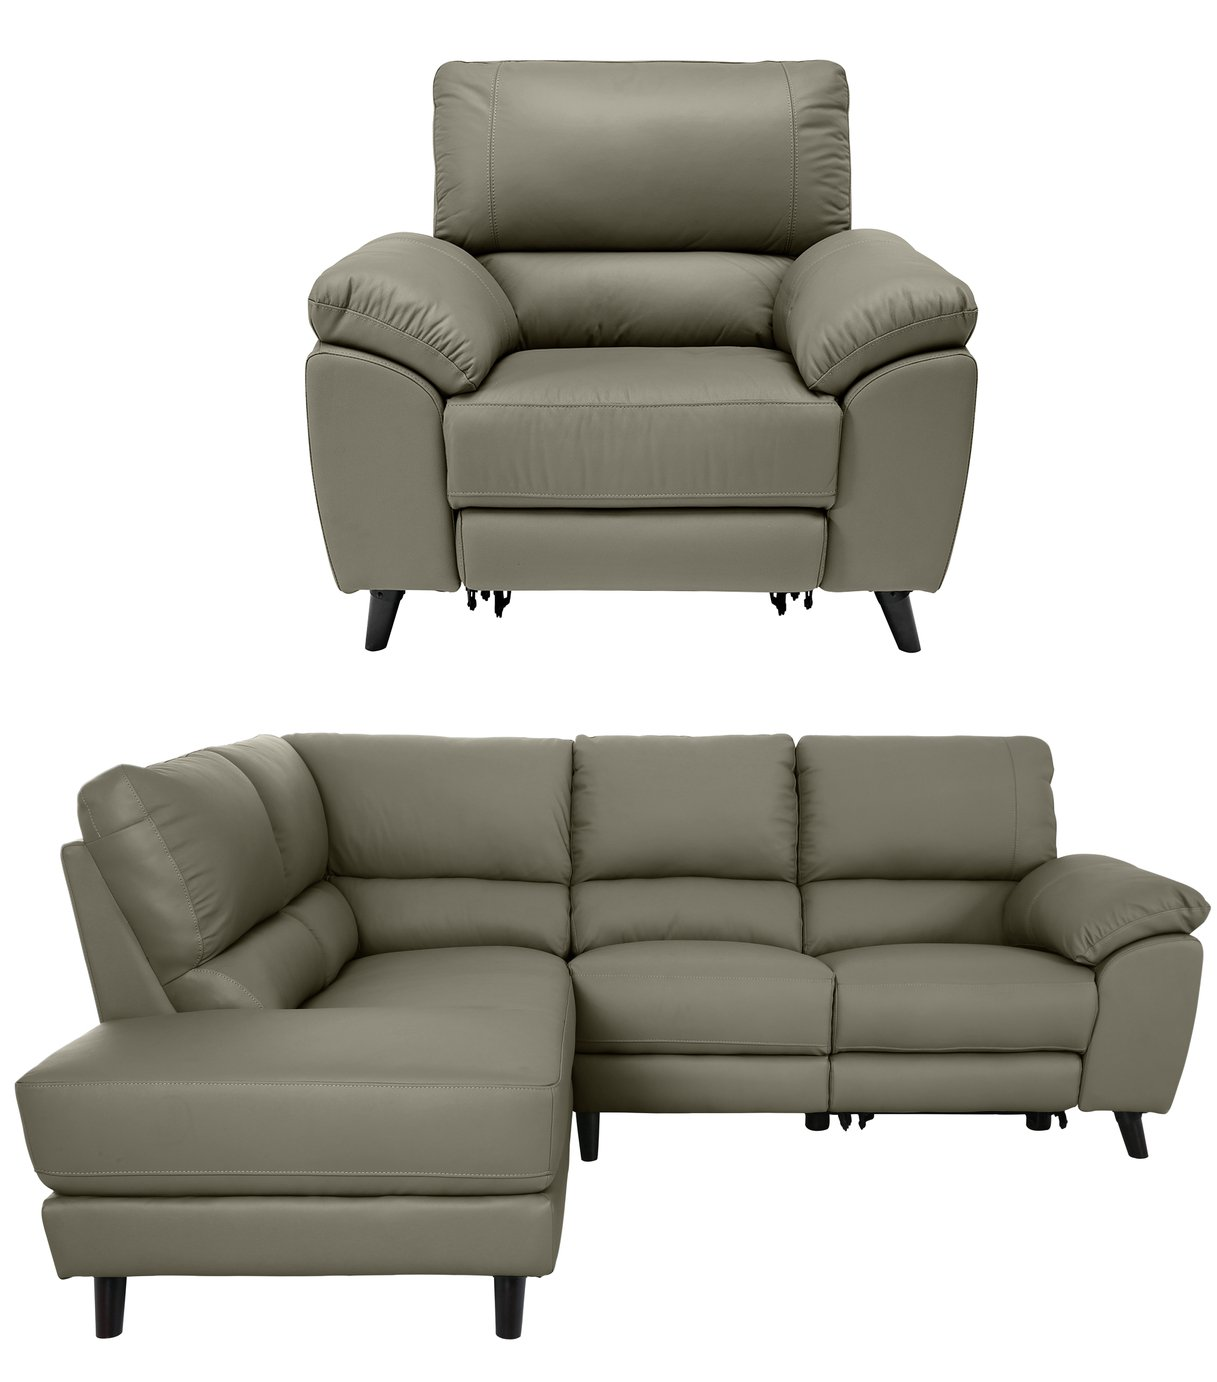 Argos Home Elliot Chair and Left Corner Recliner Sofa review